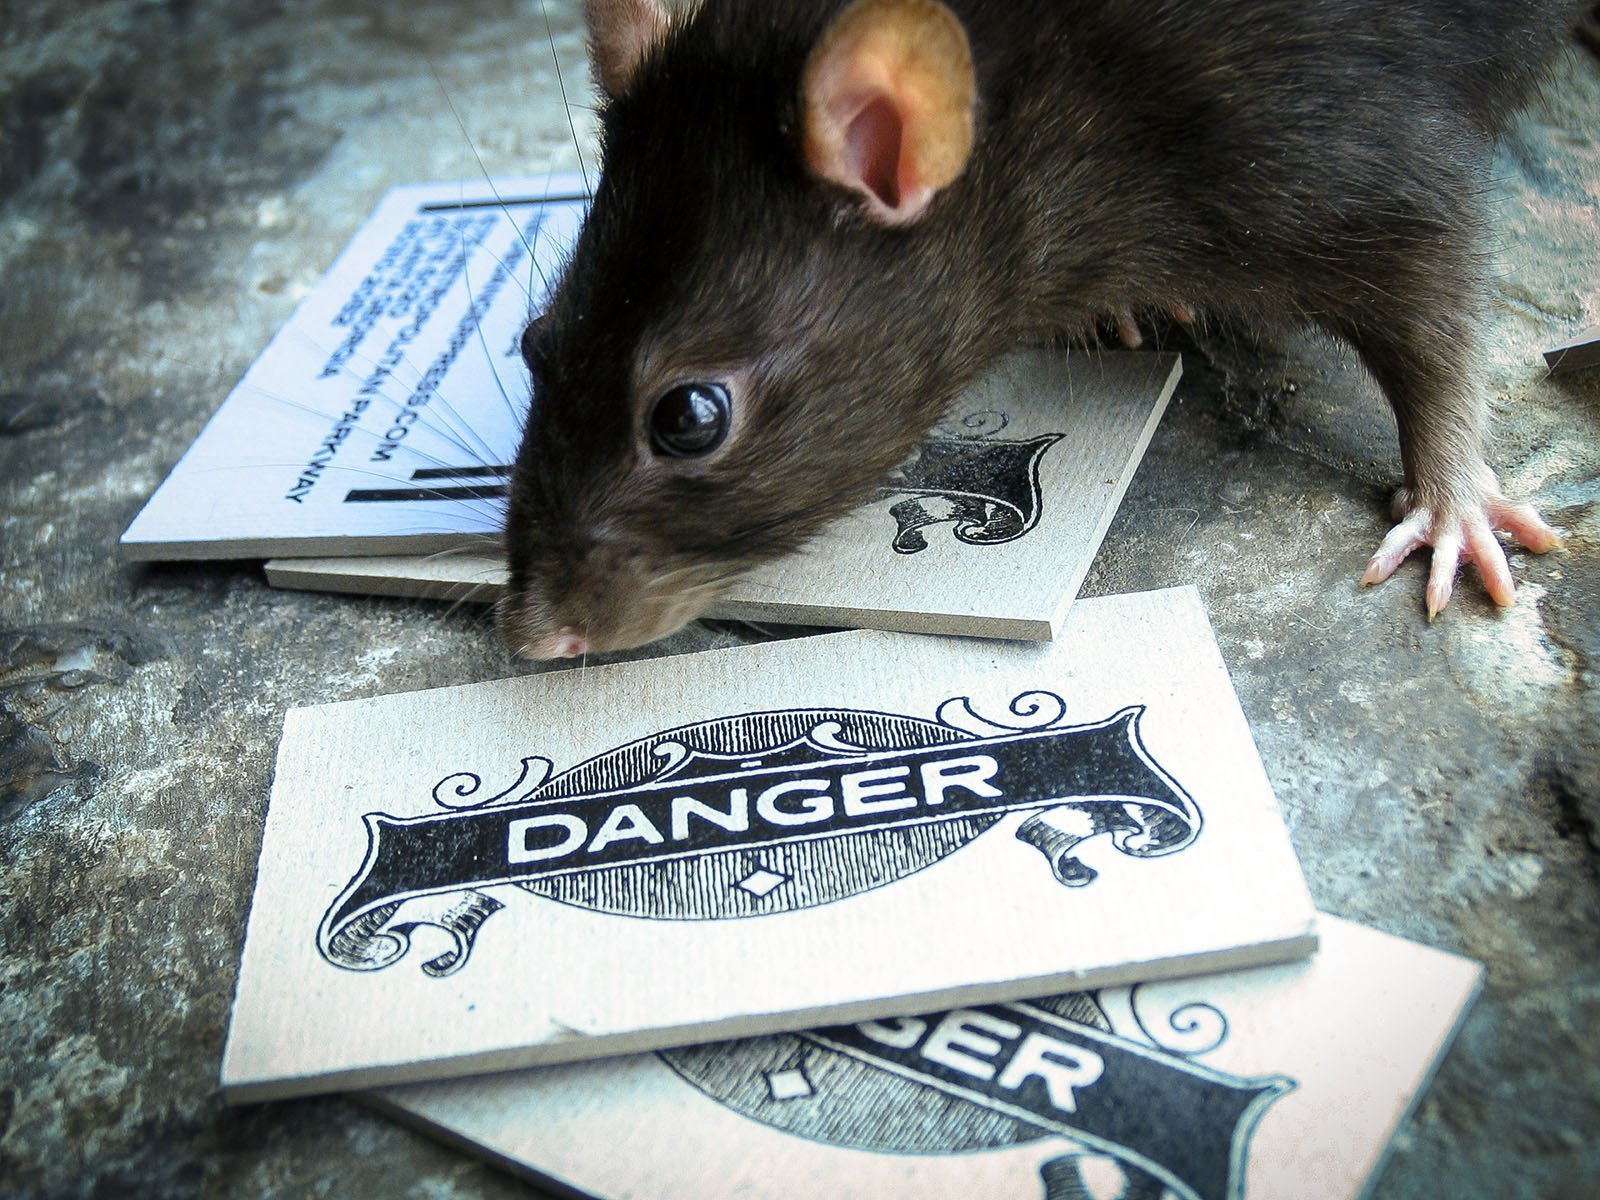 Danger Press Business Cards